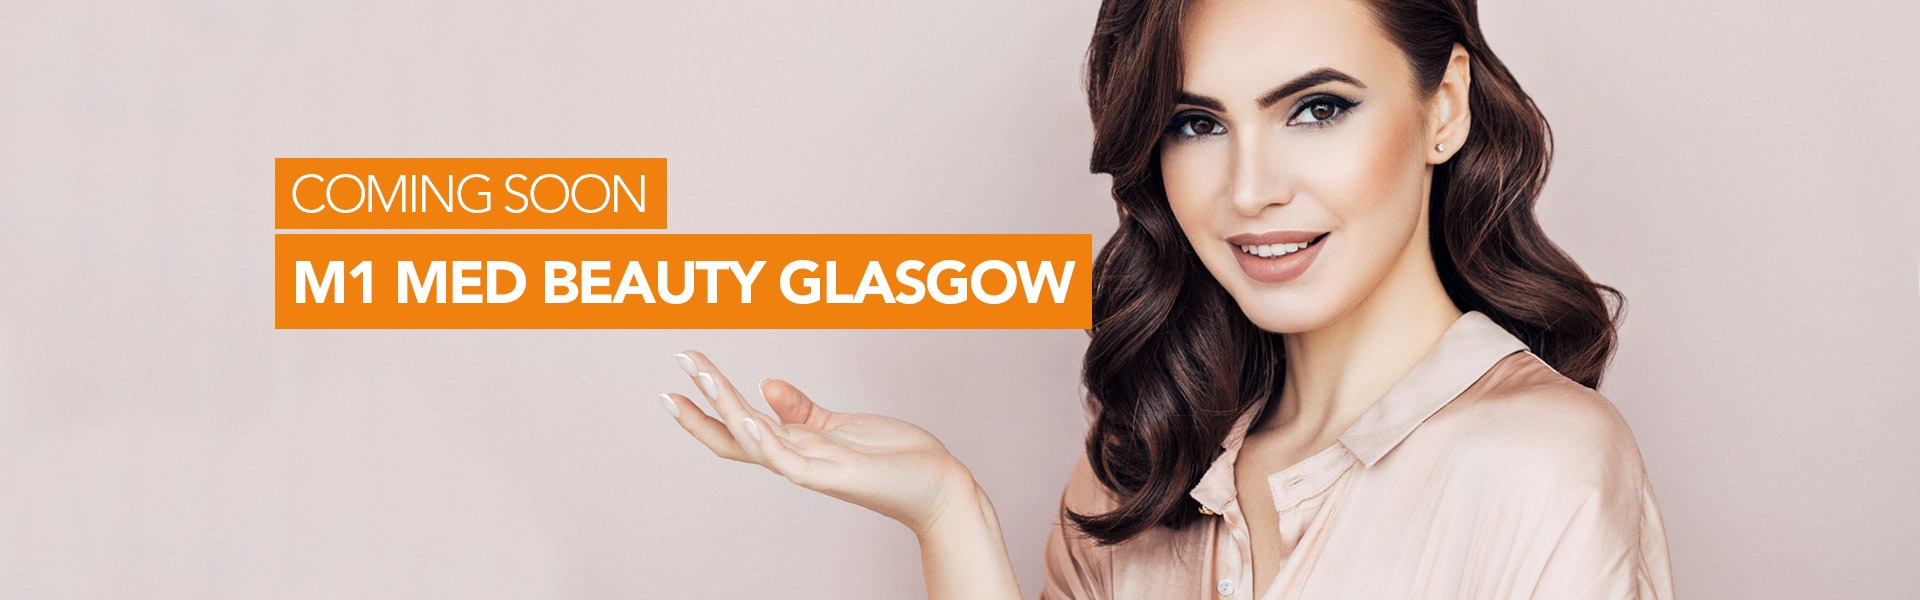 M1 Med Beauty aesthetic treatments coming to Glasgow